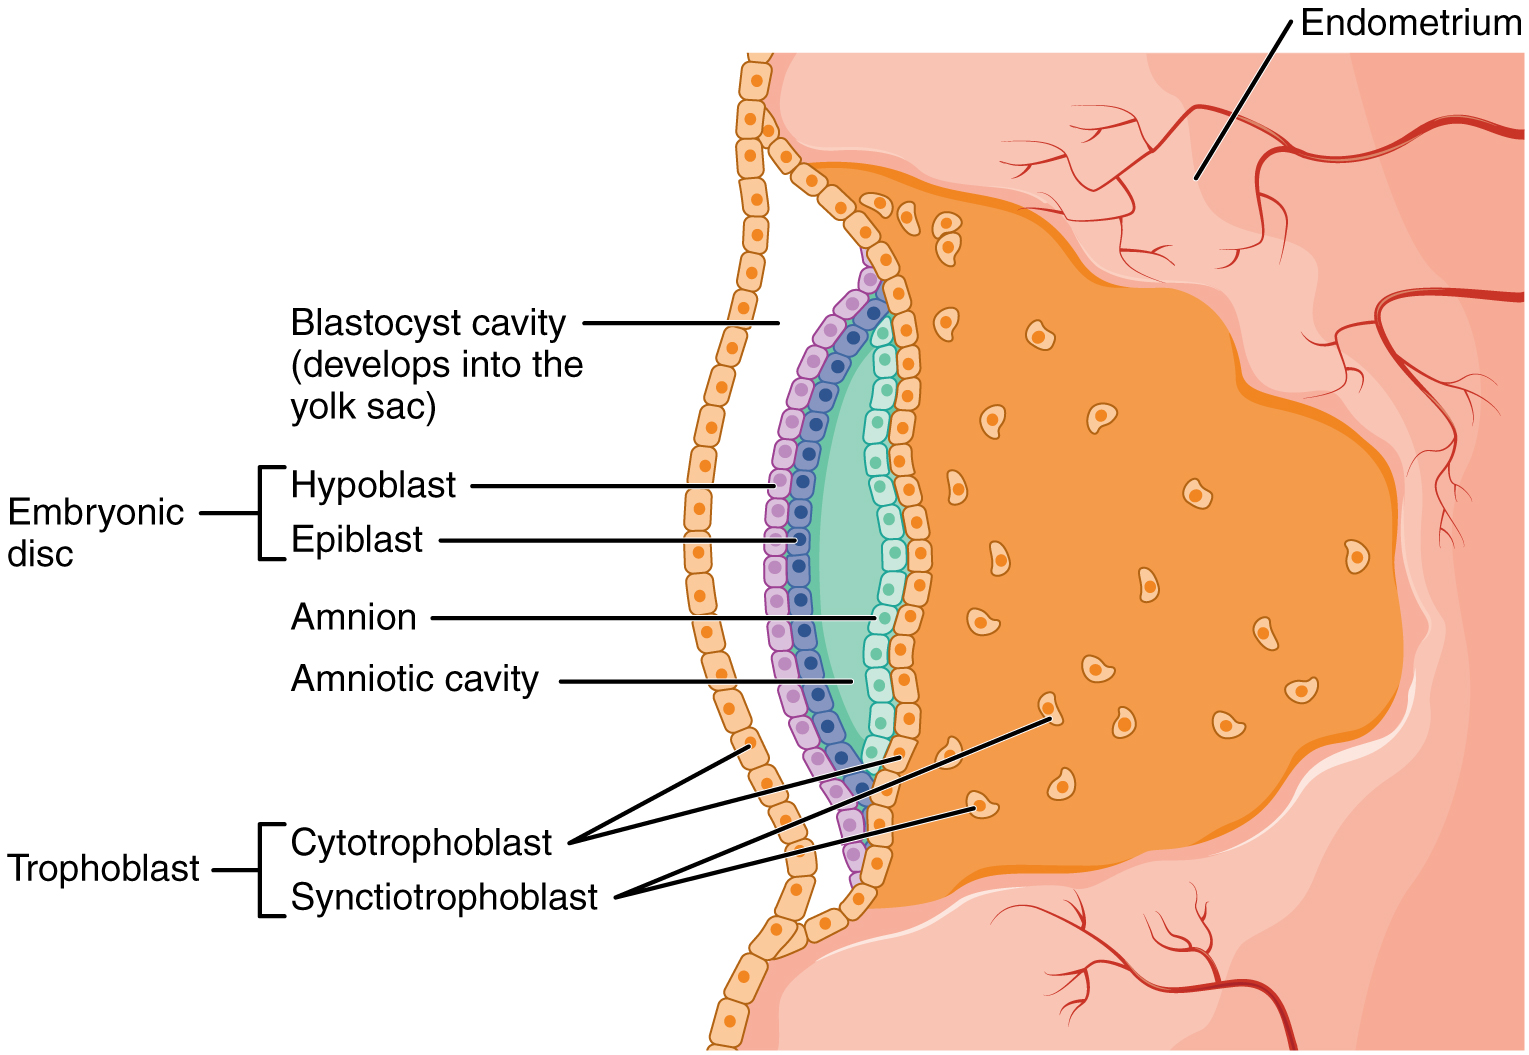 This image shows the development of the amniotic cavity and the location of the embryonic disc.